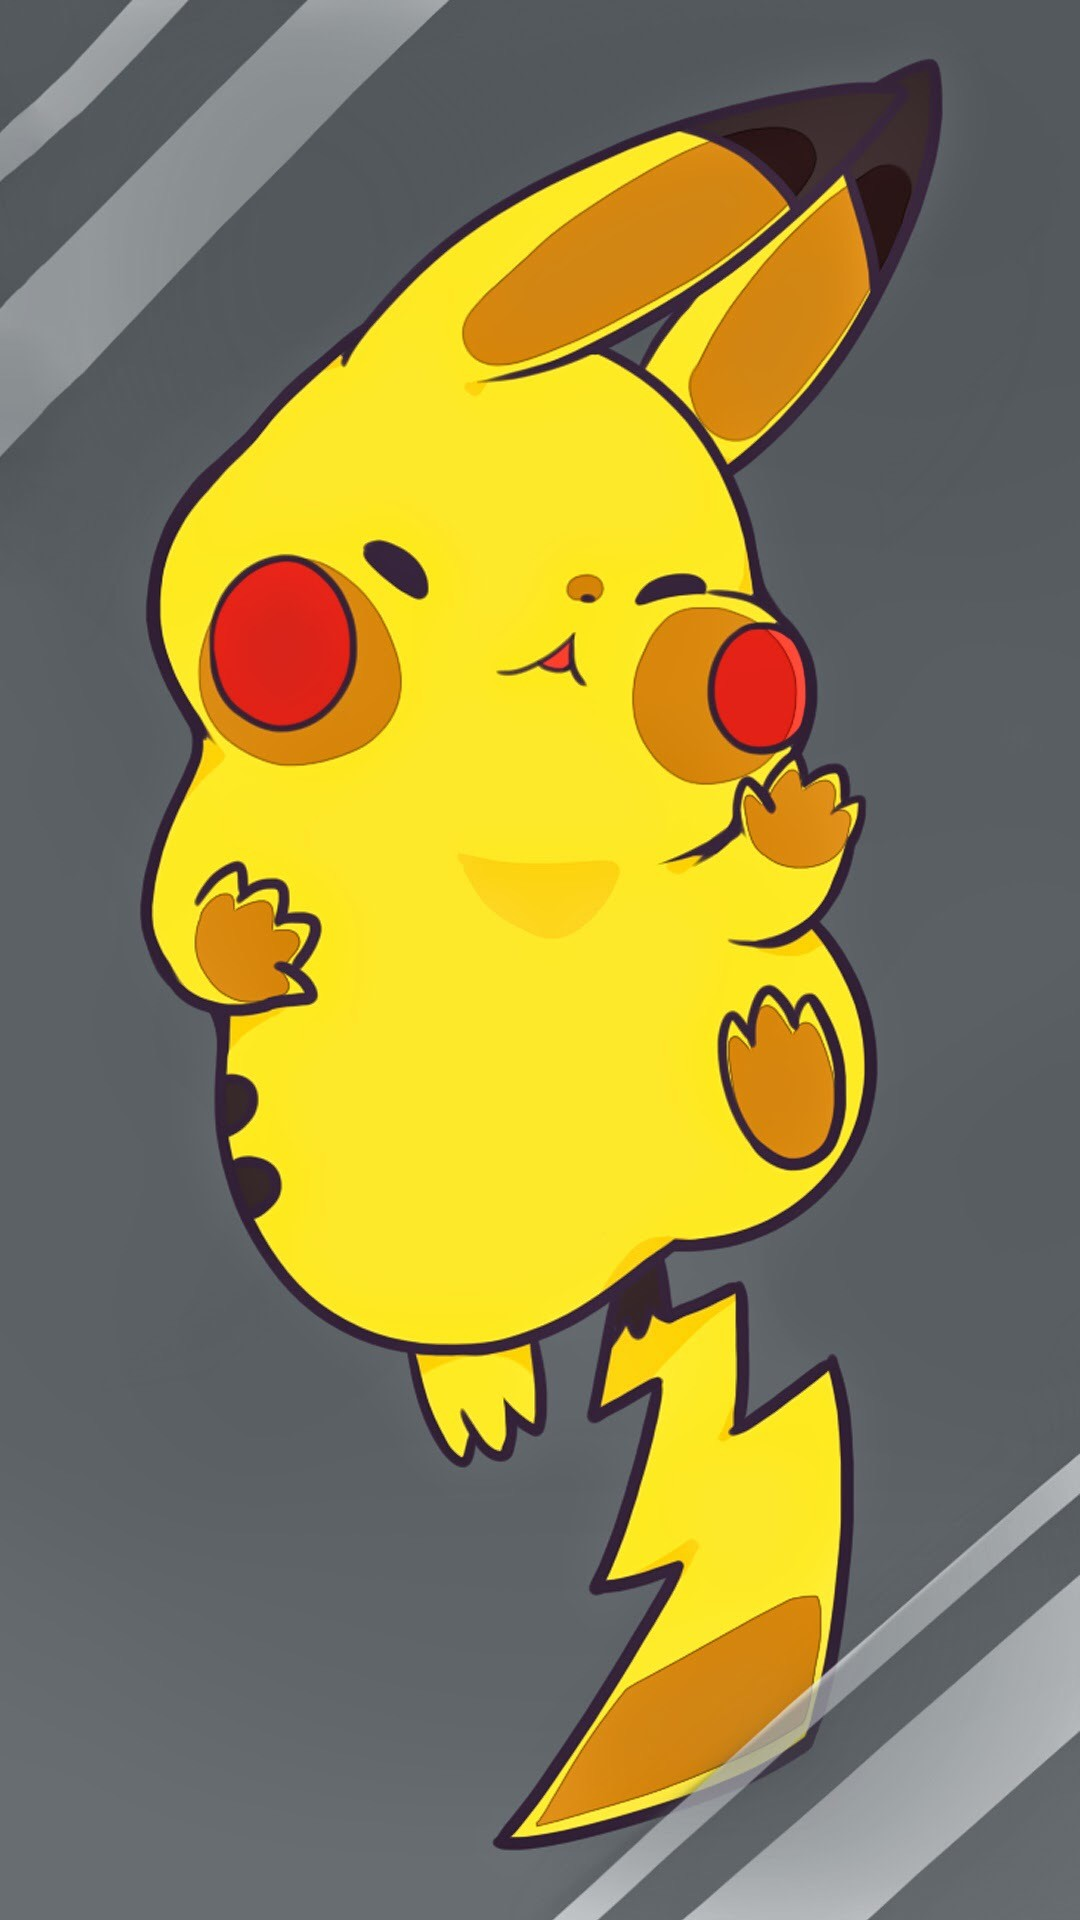 Cute And Adorable Wallpapers Chibi Pokemon Wallpaper 57 Images